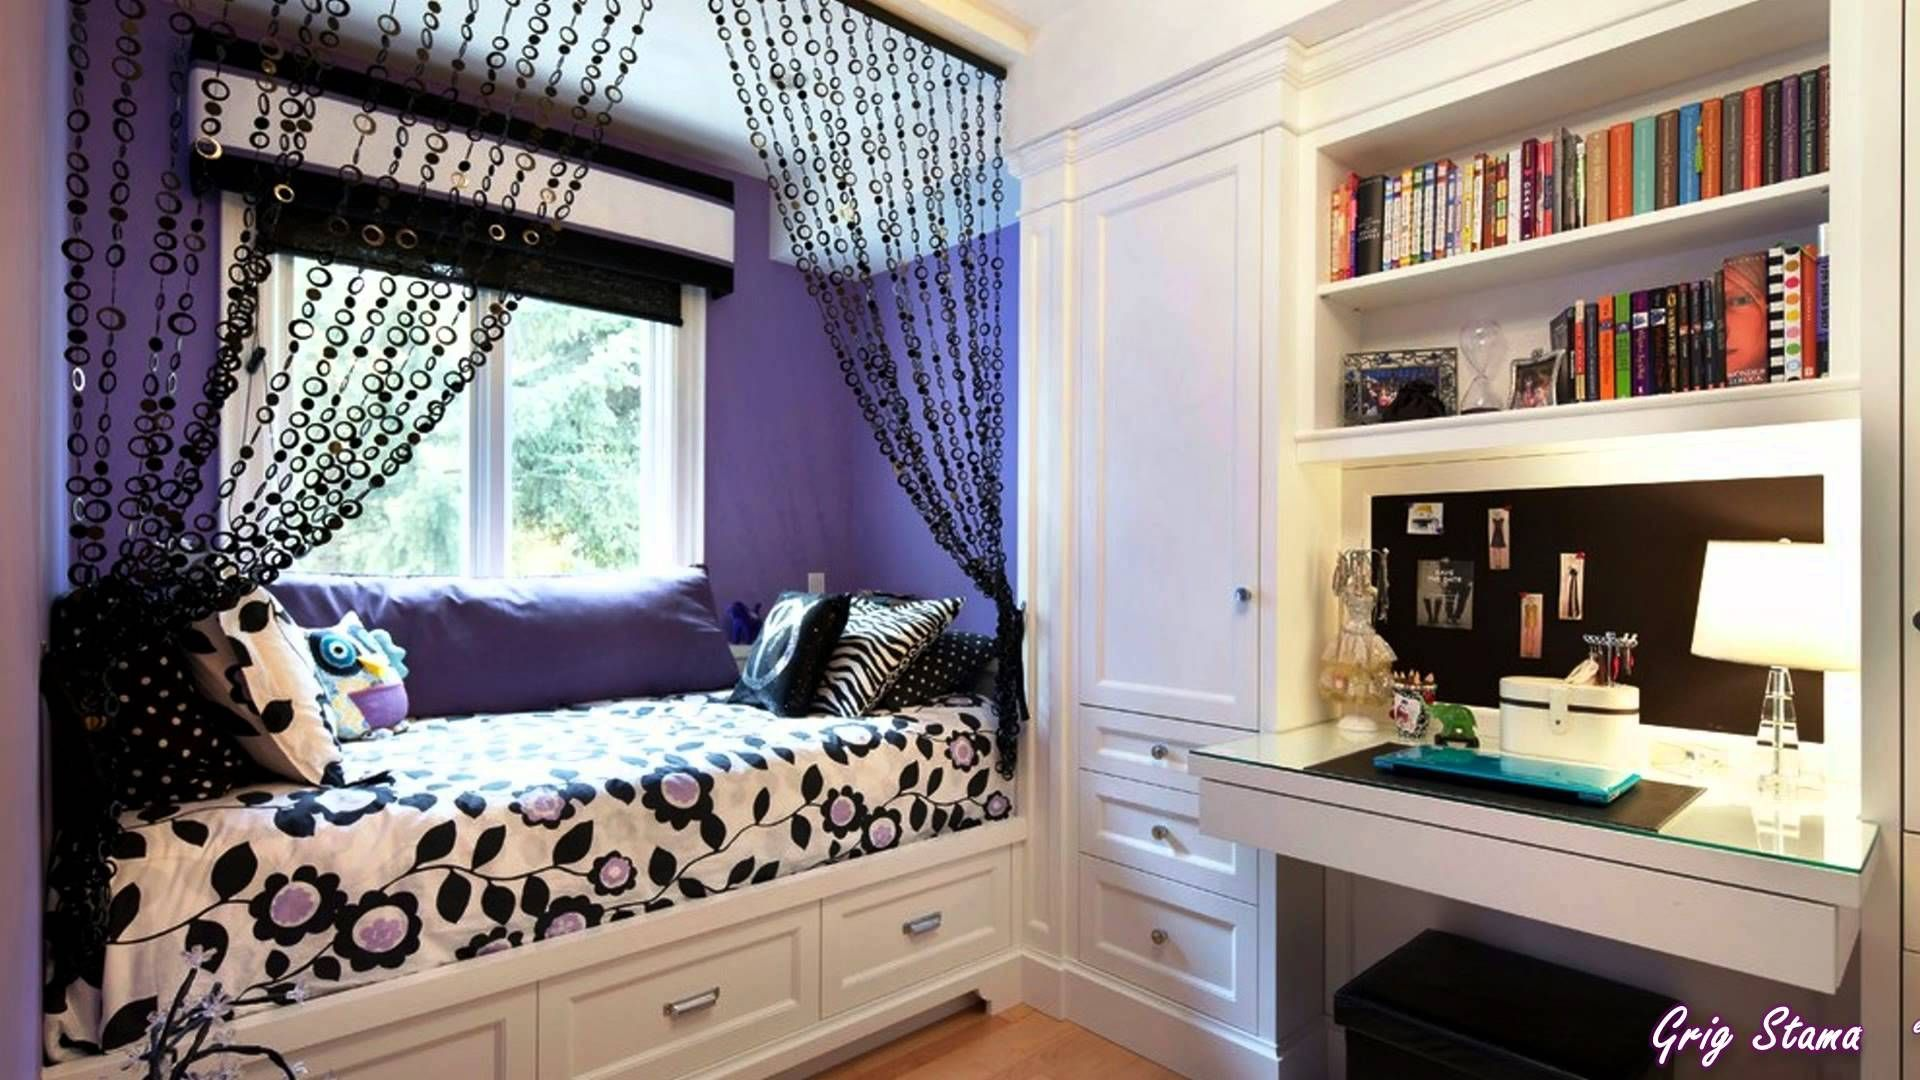 Unique bedroom designs tumblr - Bedroom Ideas For Teenage Girls Tumblr Simple Cosmoplast Biz